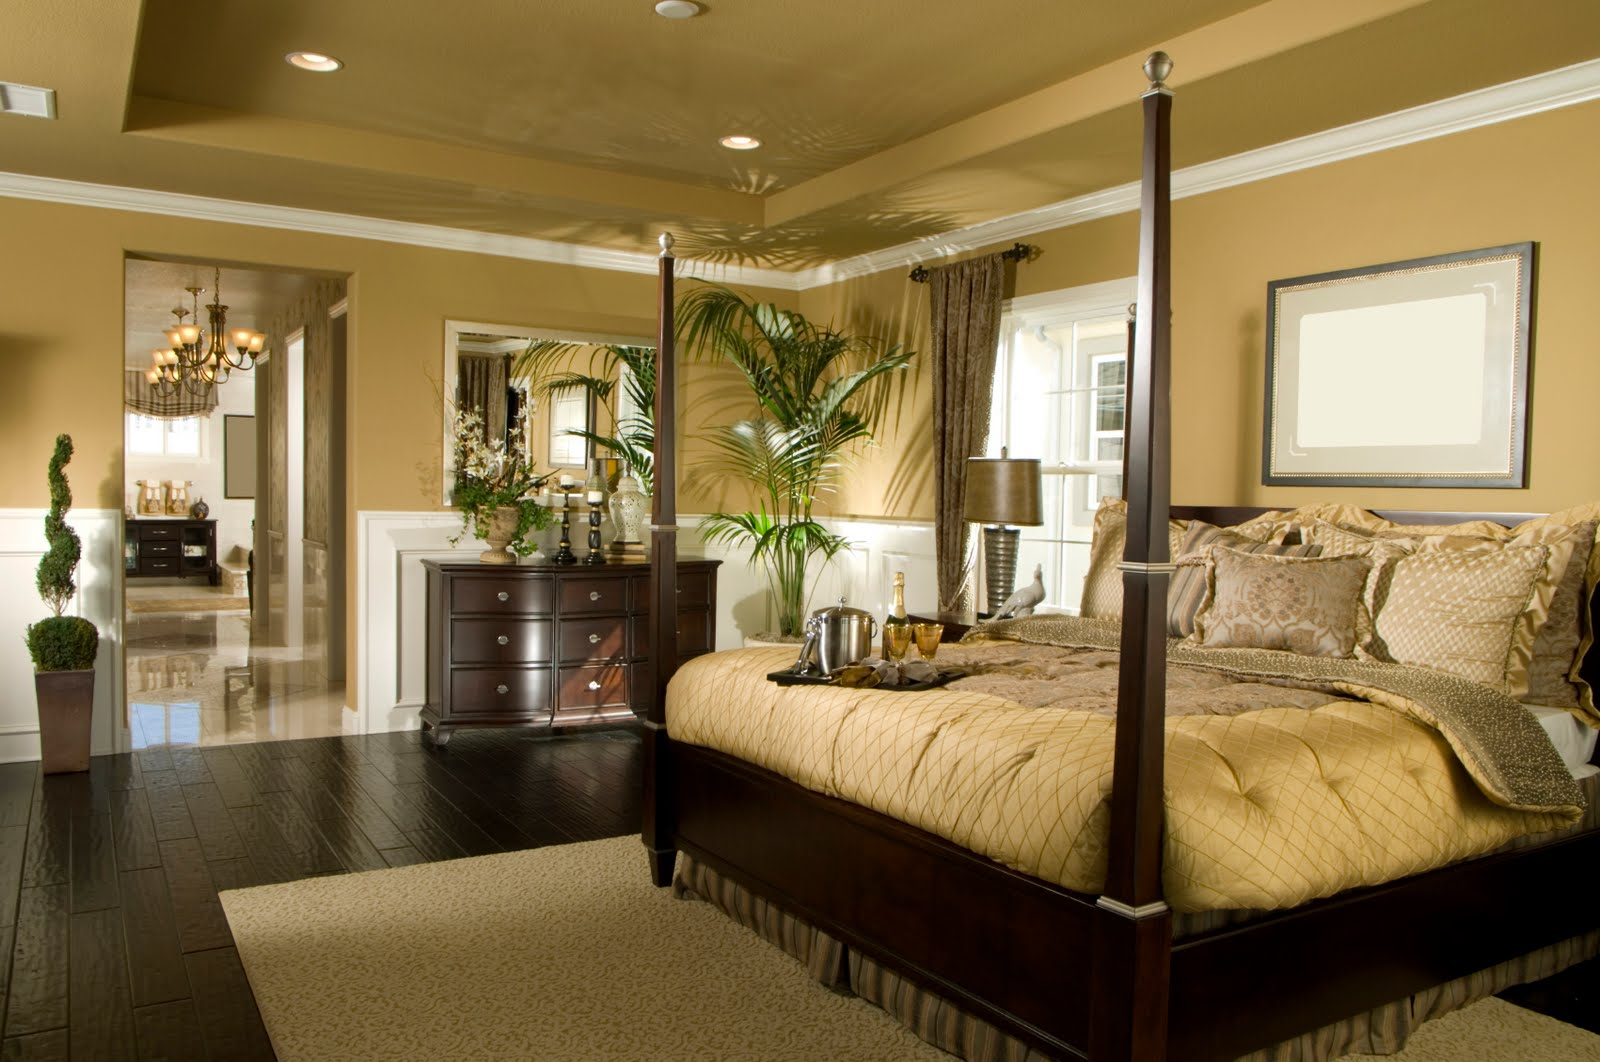 Centerville luxury property million dollar homes for sale for Master bedroom decor